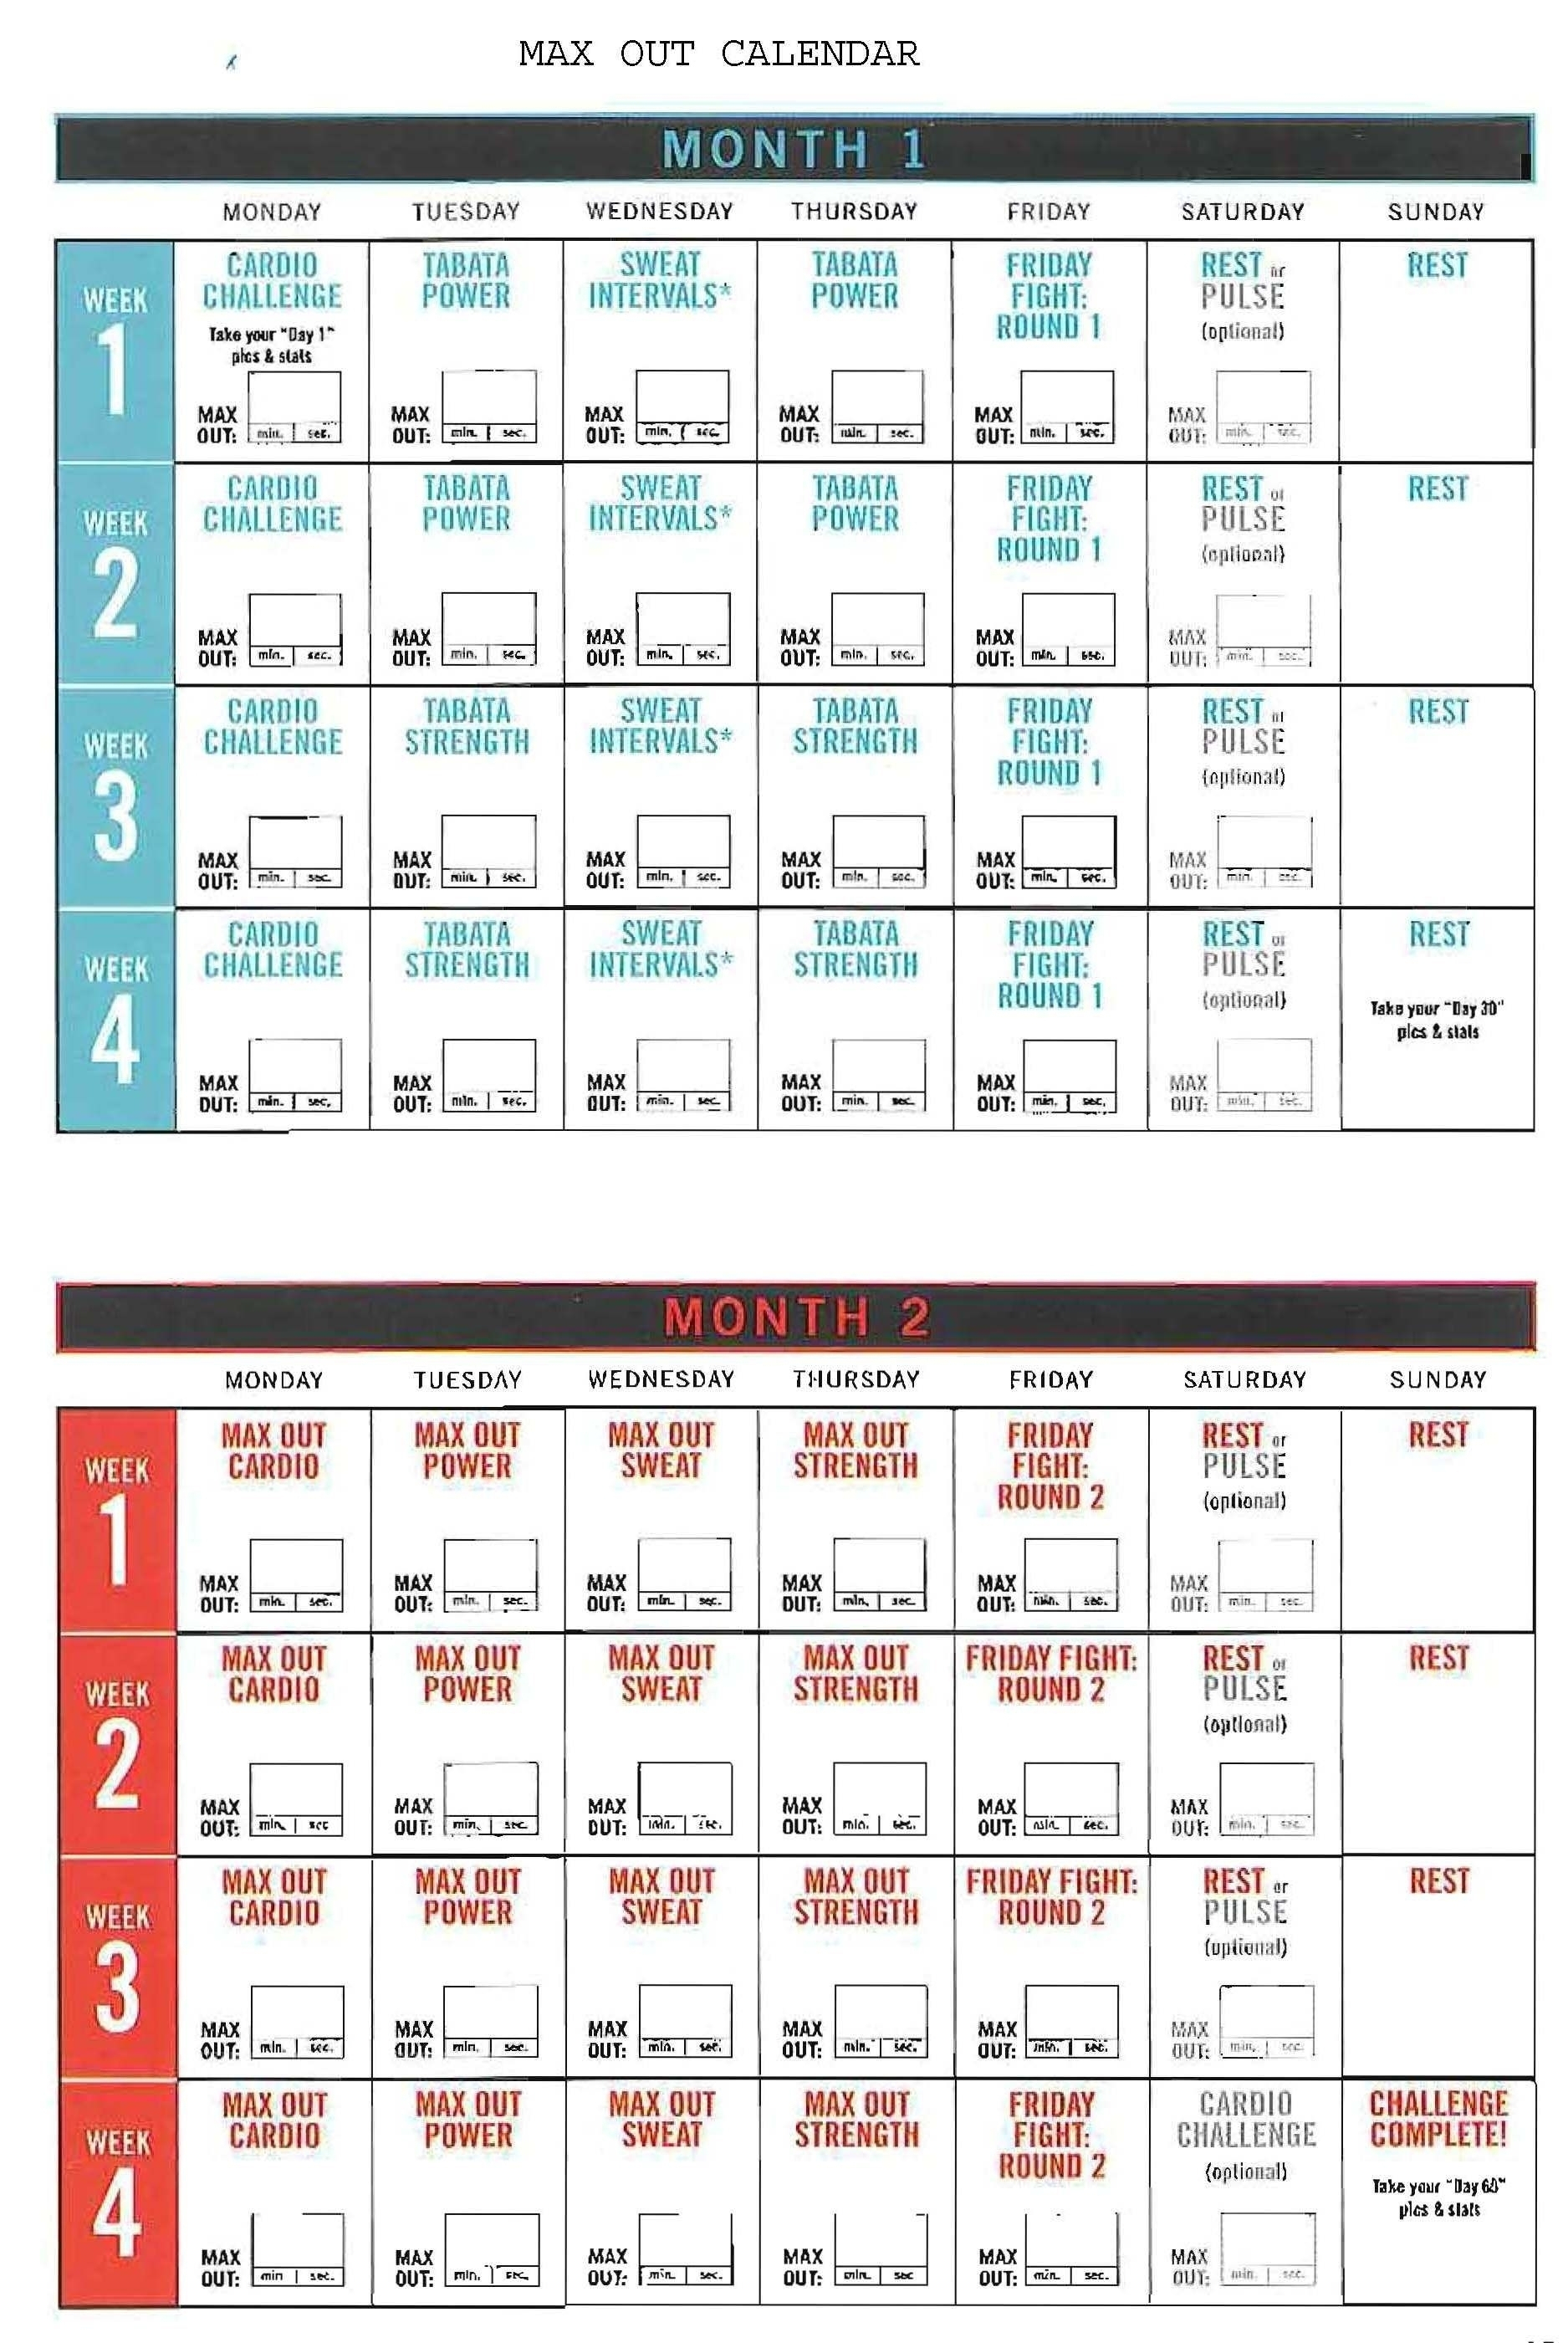 Insanity Calendar Print Out | Monthly Printable Calender throughout Insanity Max 30 Schedule Pdf